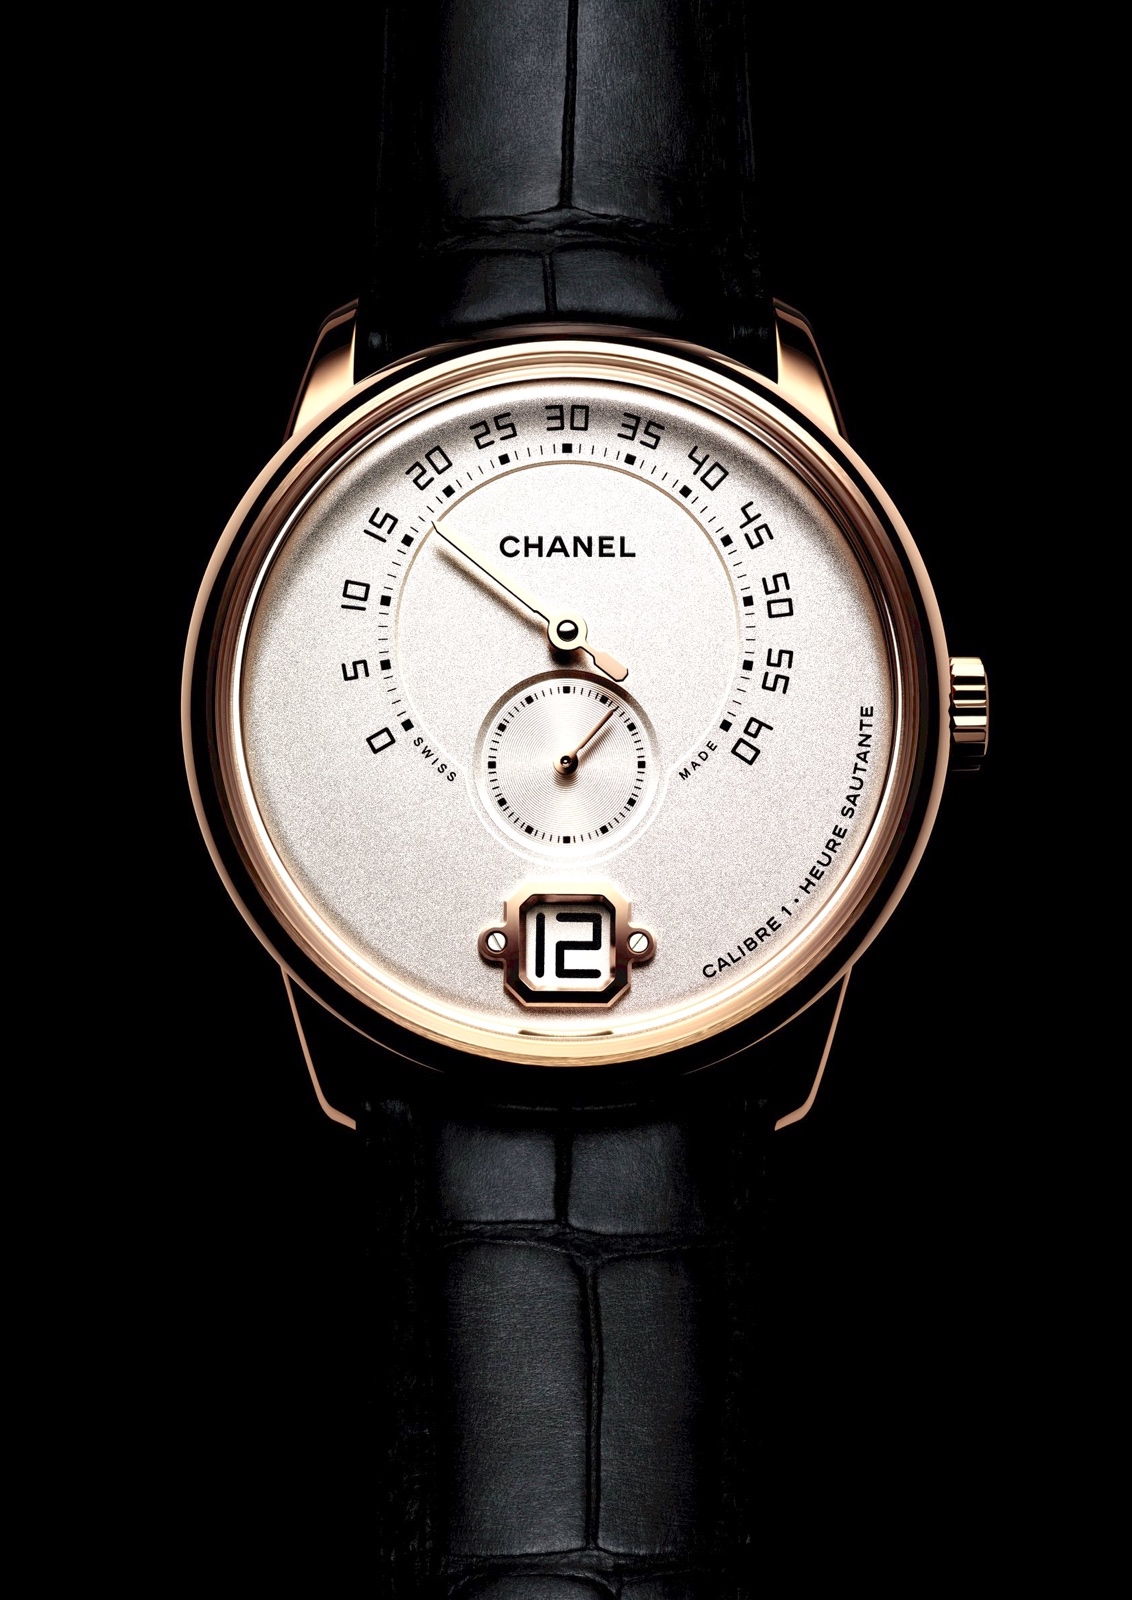 Chanel en Baselworld 2016 - Monsieur de Chanel